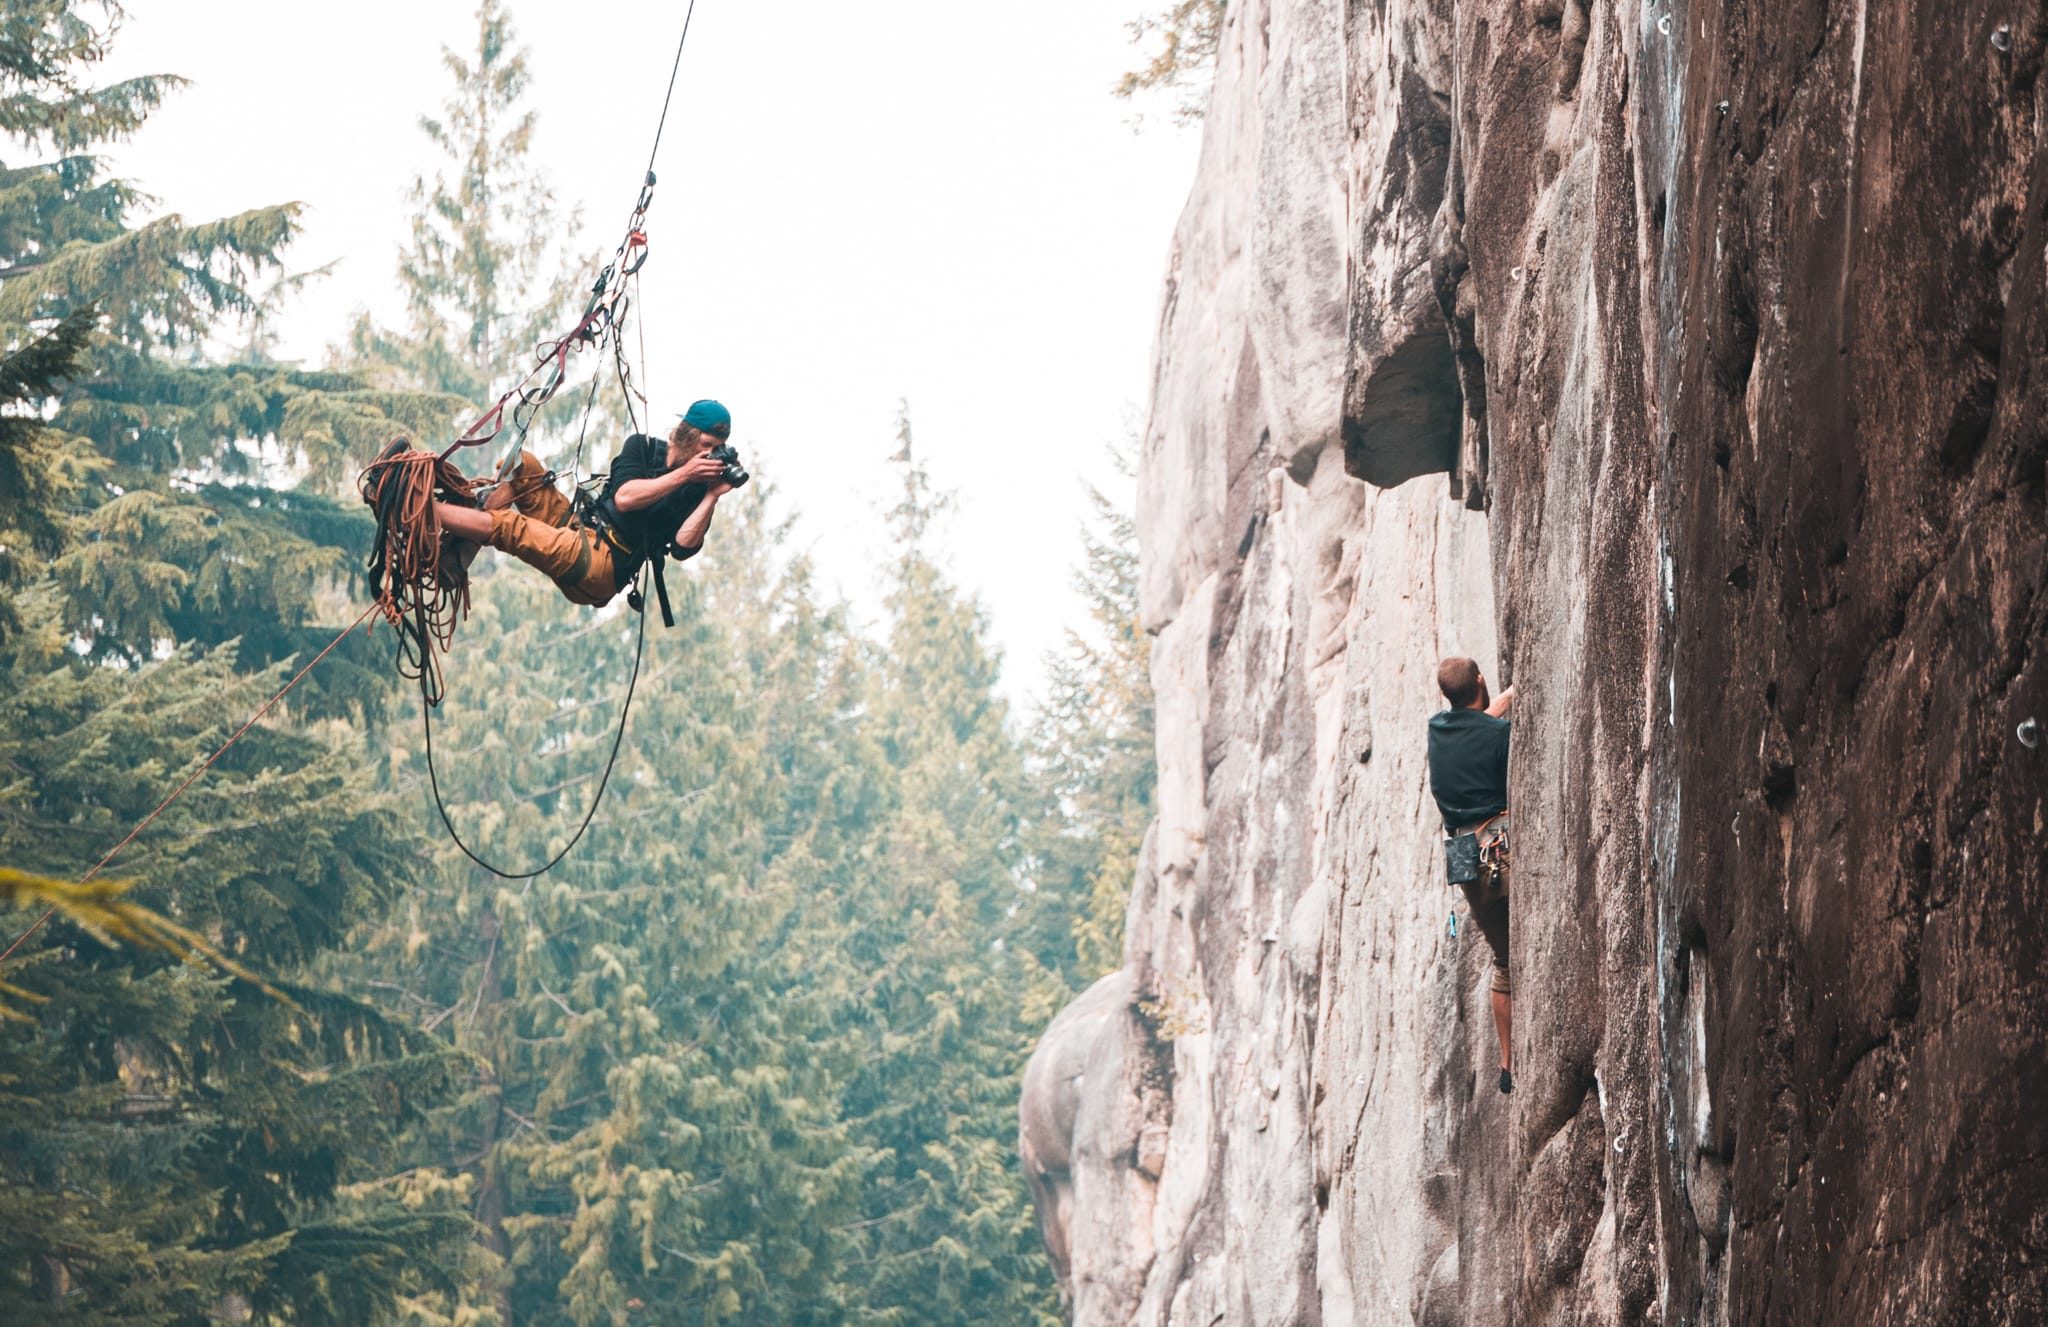 Photographer dangling from cliff wall taking photos of rock climber.